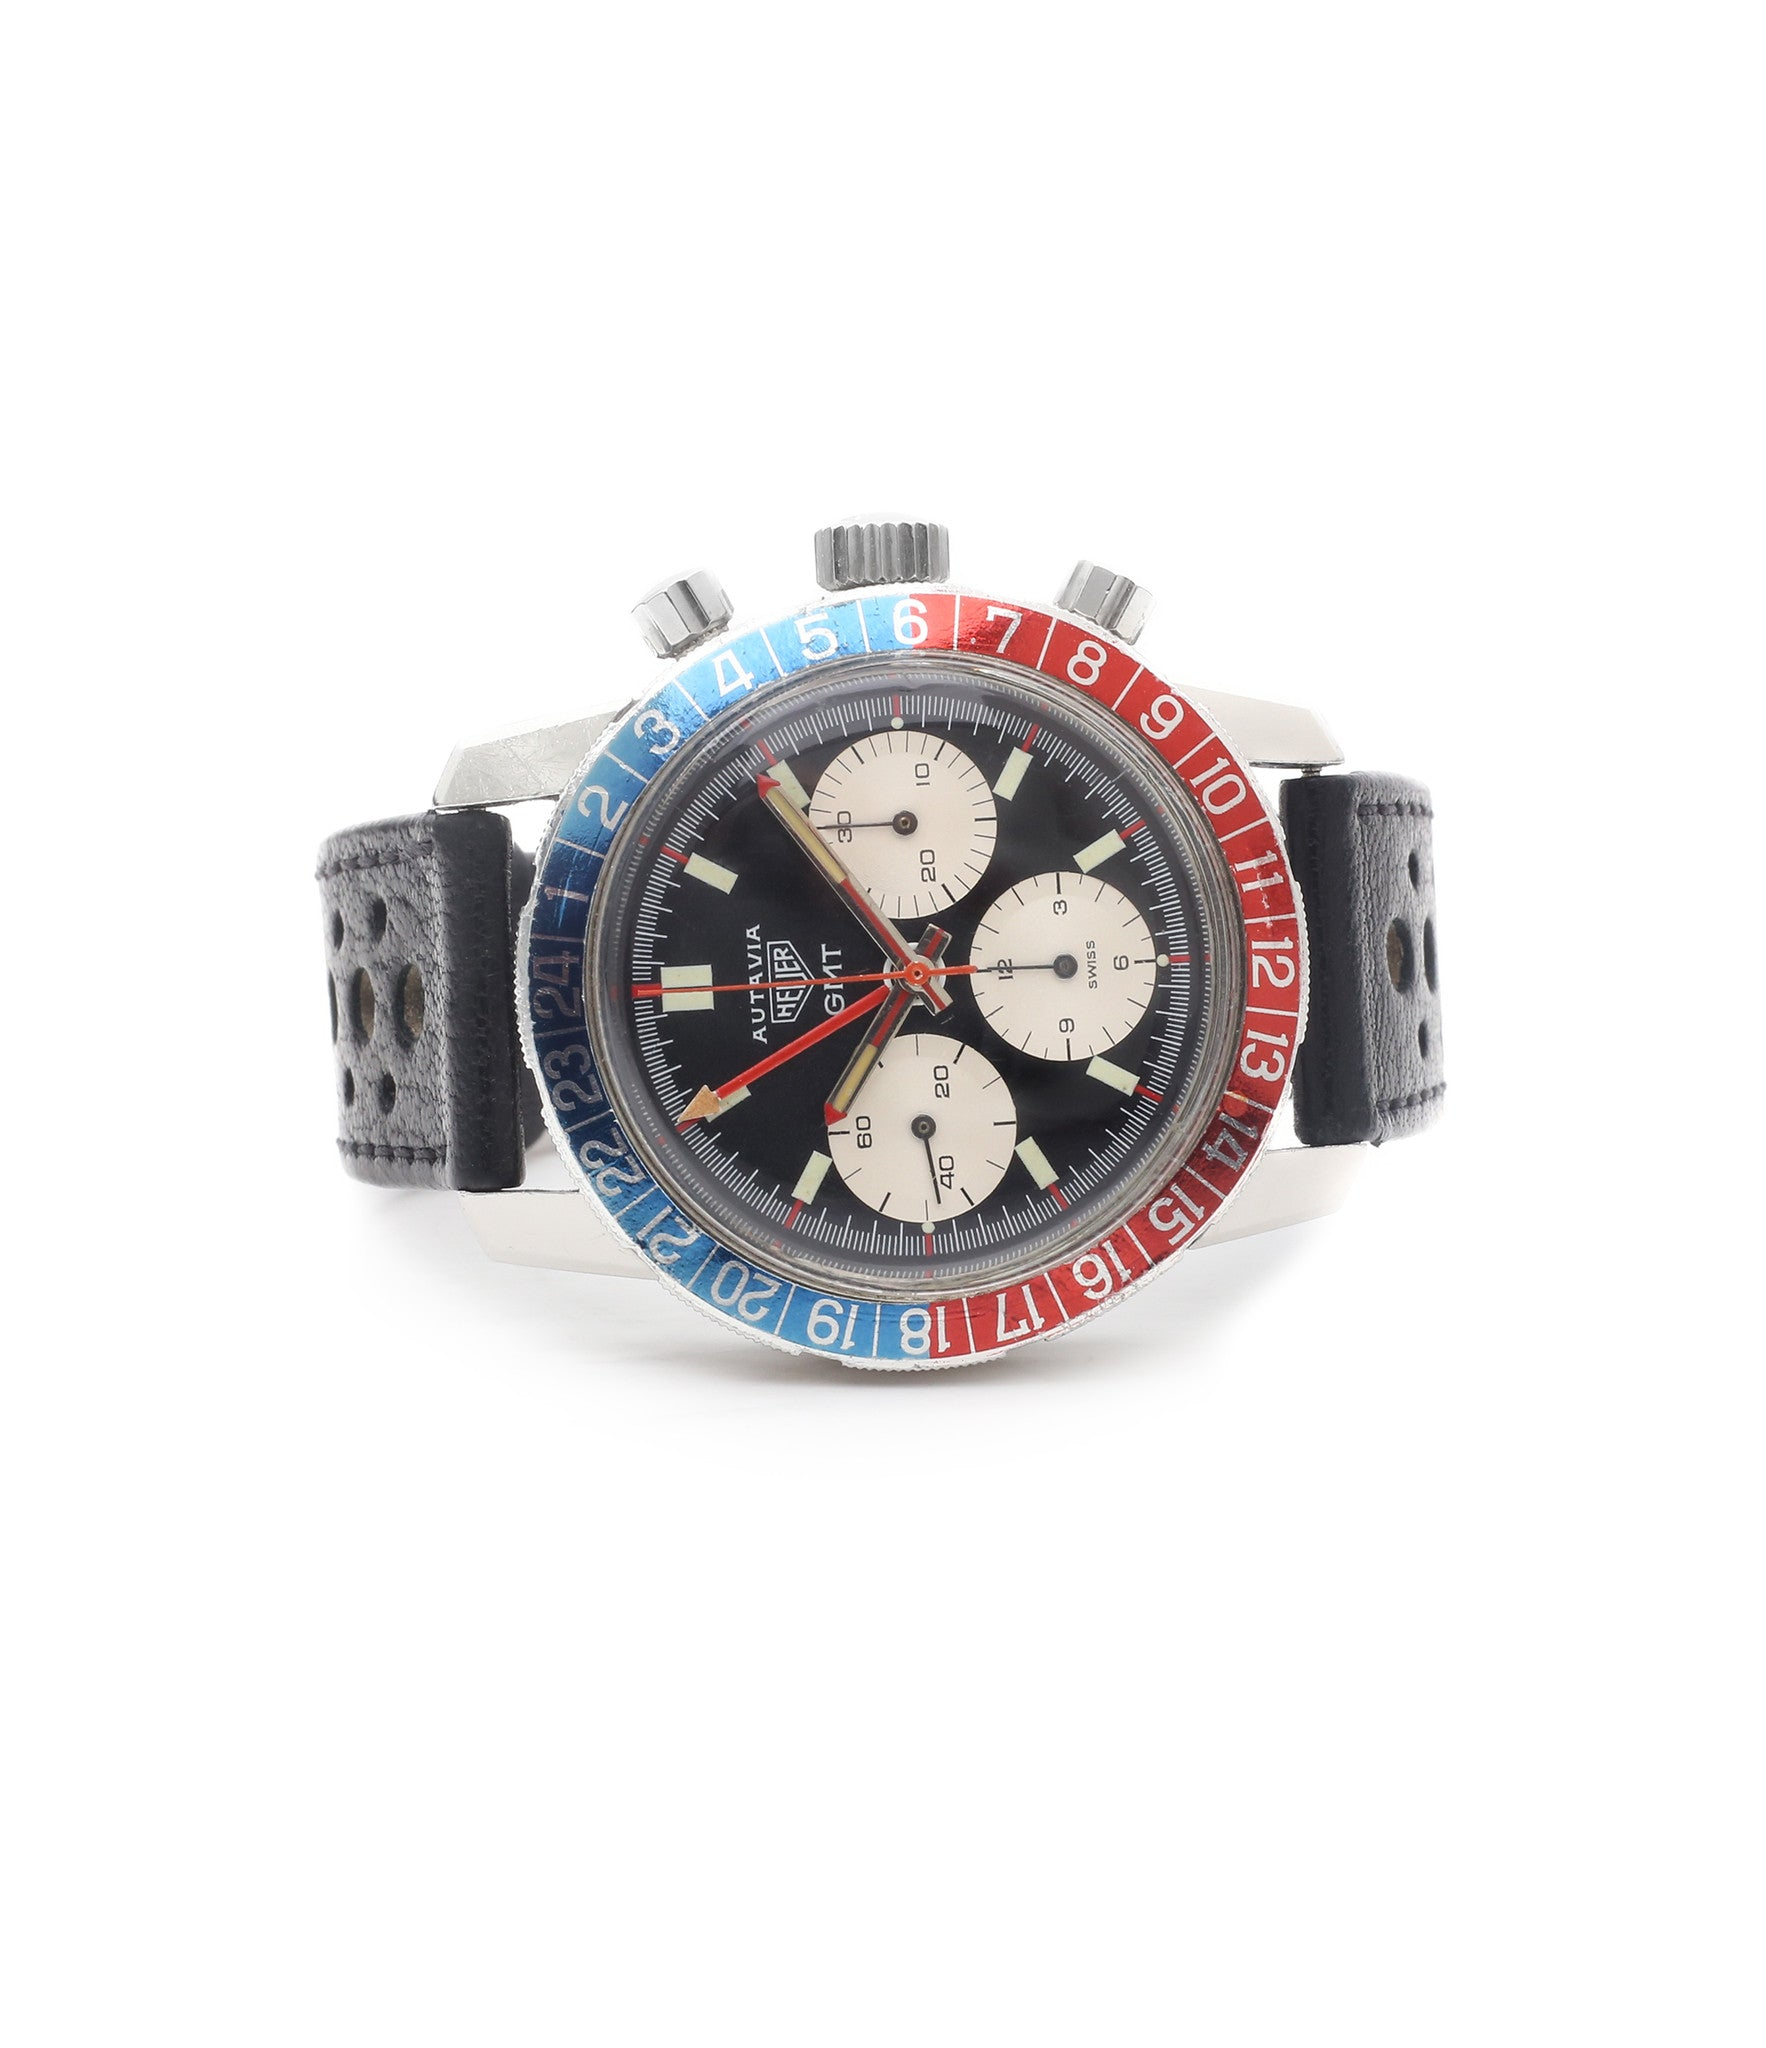 for sale Heuer Autavia GMT 2446C vintage steel chronograph watch online at A Collected Man London